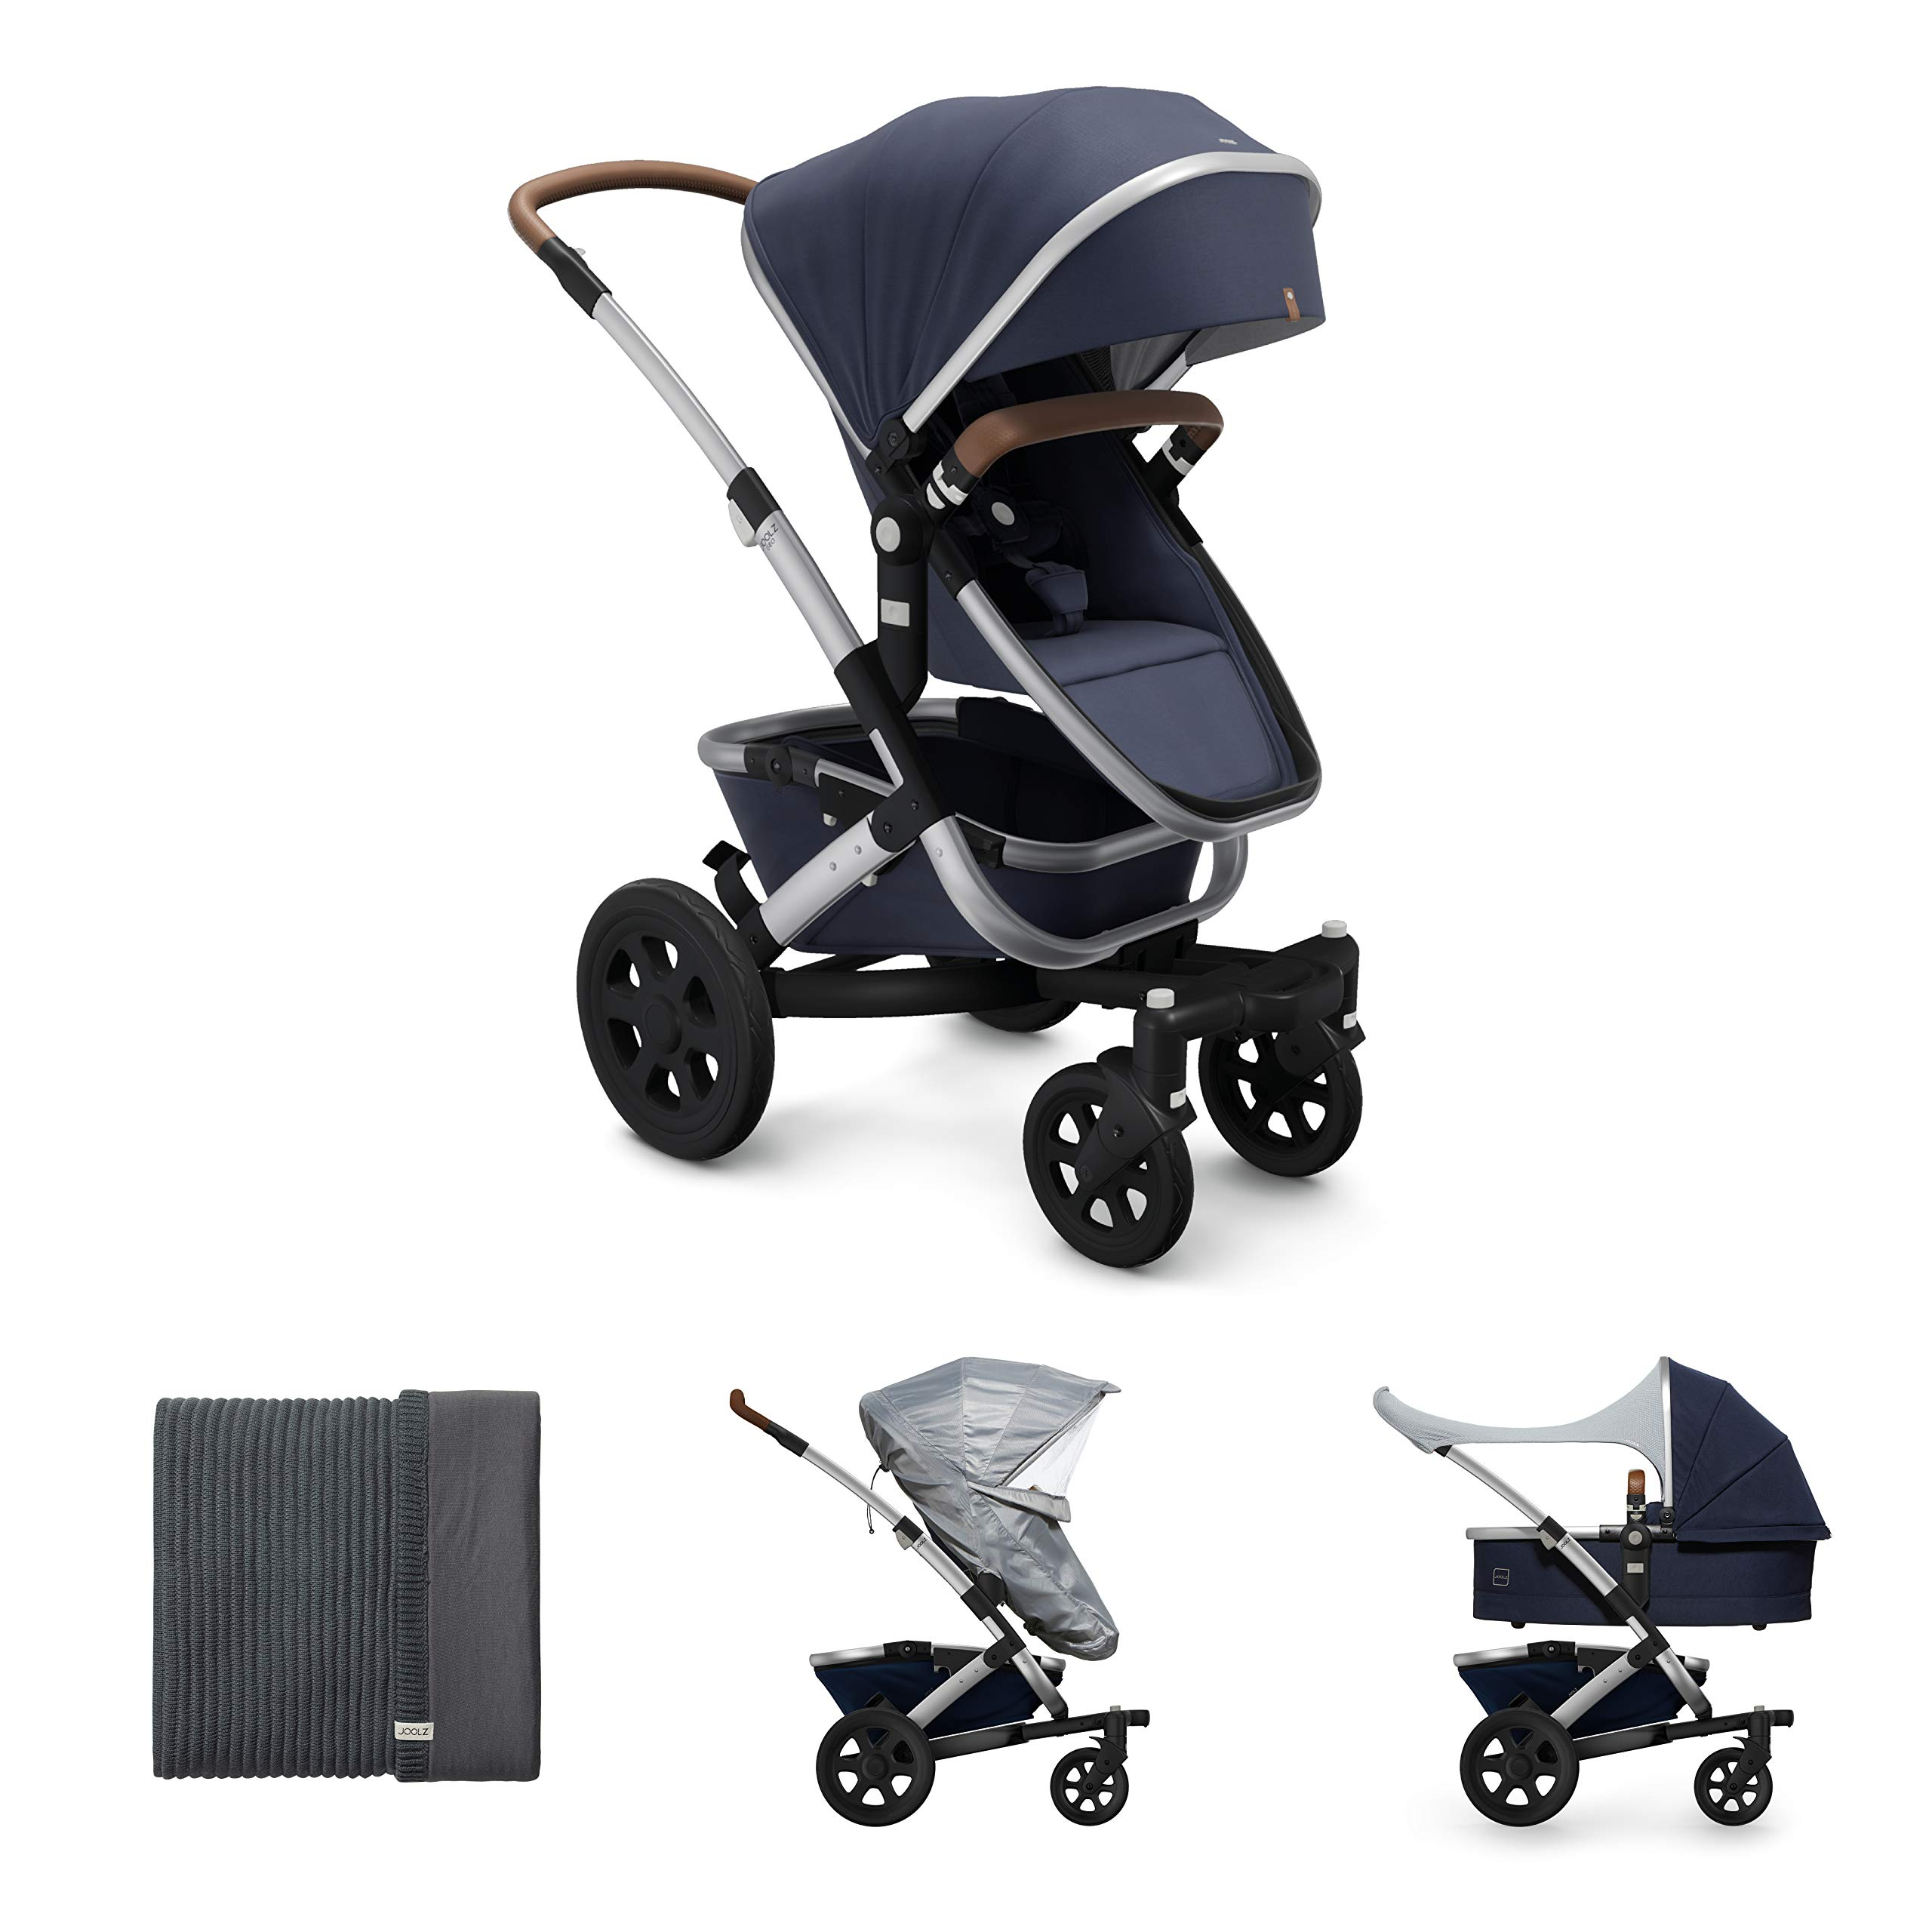 Joolz Geo2 Stroller in Classic Blue with 100% Organic Blanket, Comfort Cover and Rain Cover